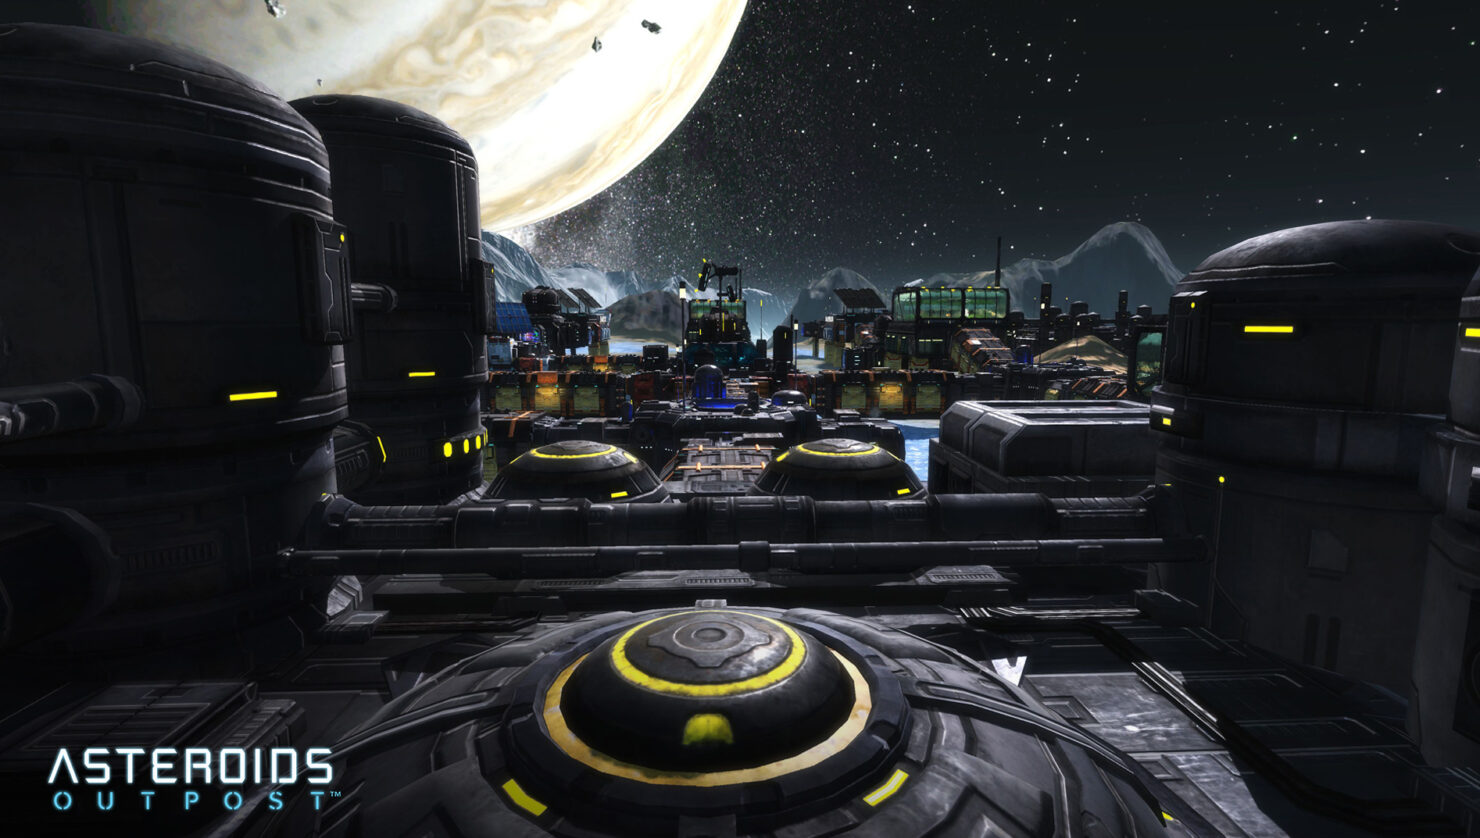 asteroids outposts